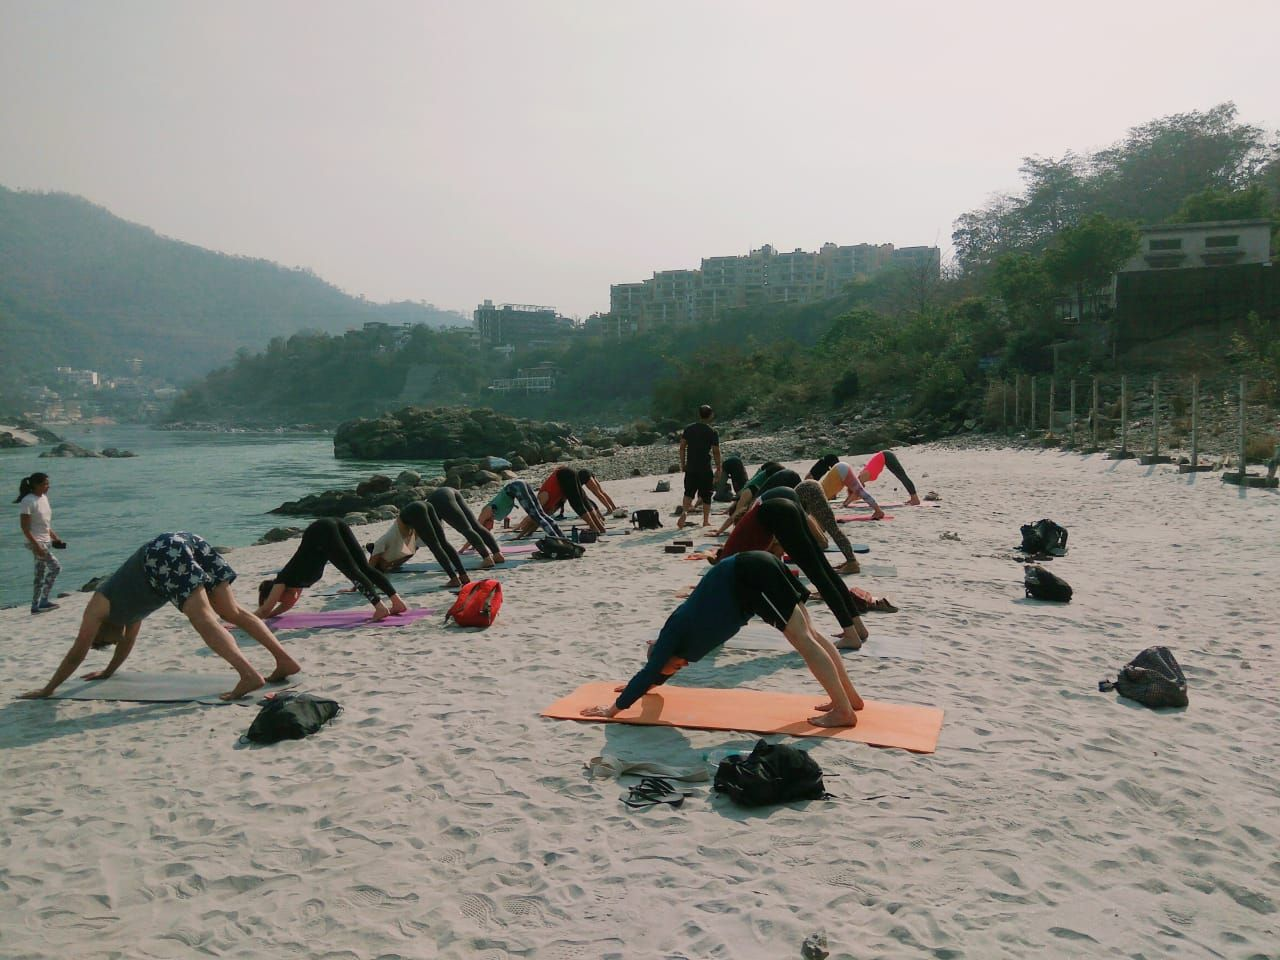 Take your yoga experience to the next level with #Vinyasayoga teacher training in India. Learn vario...